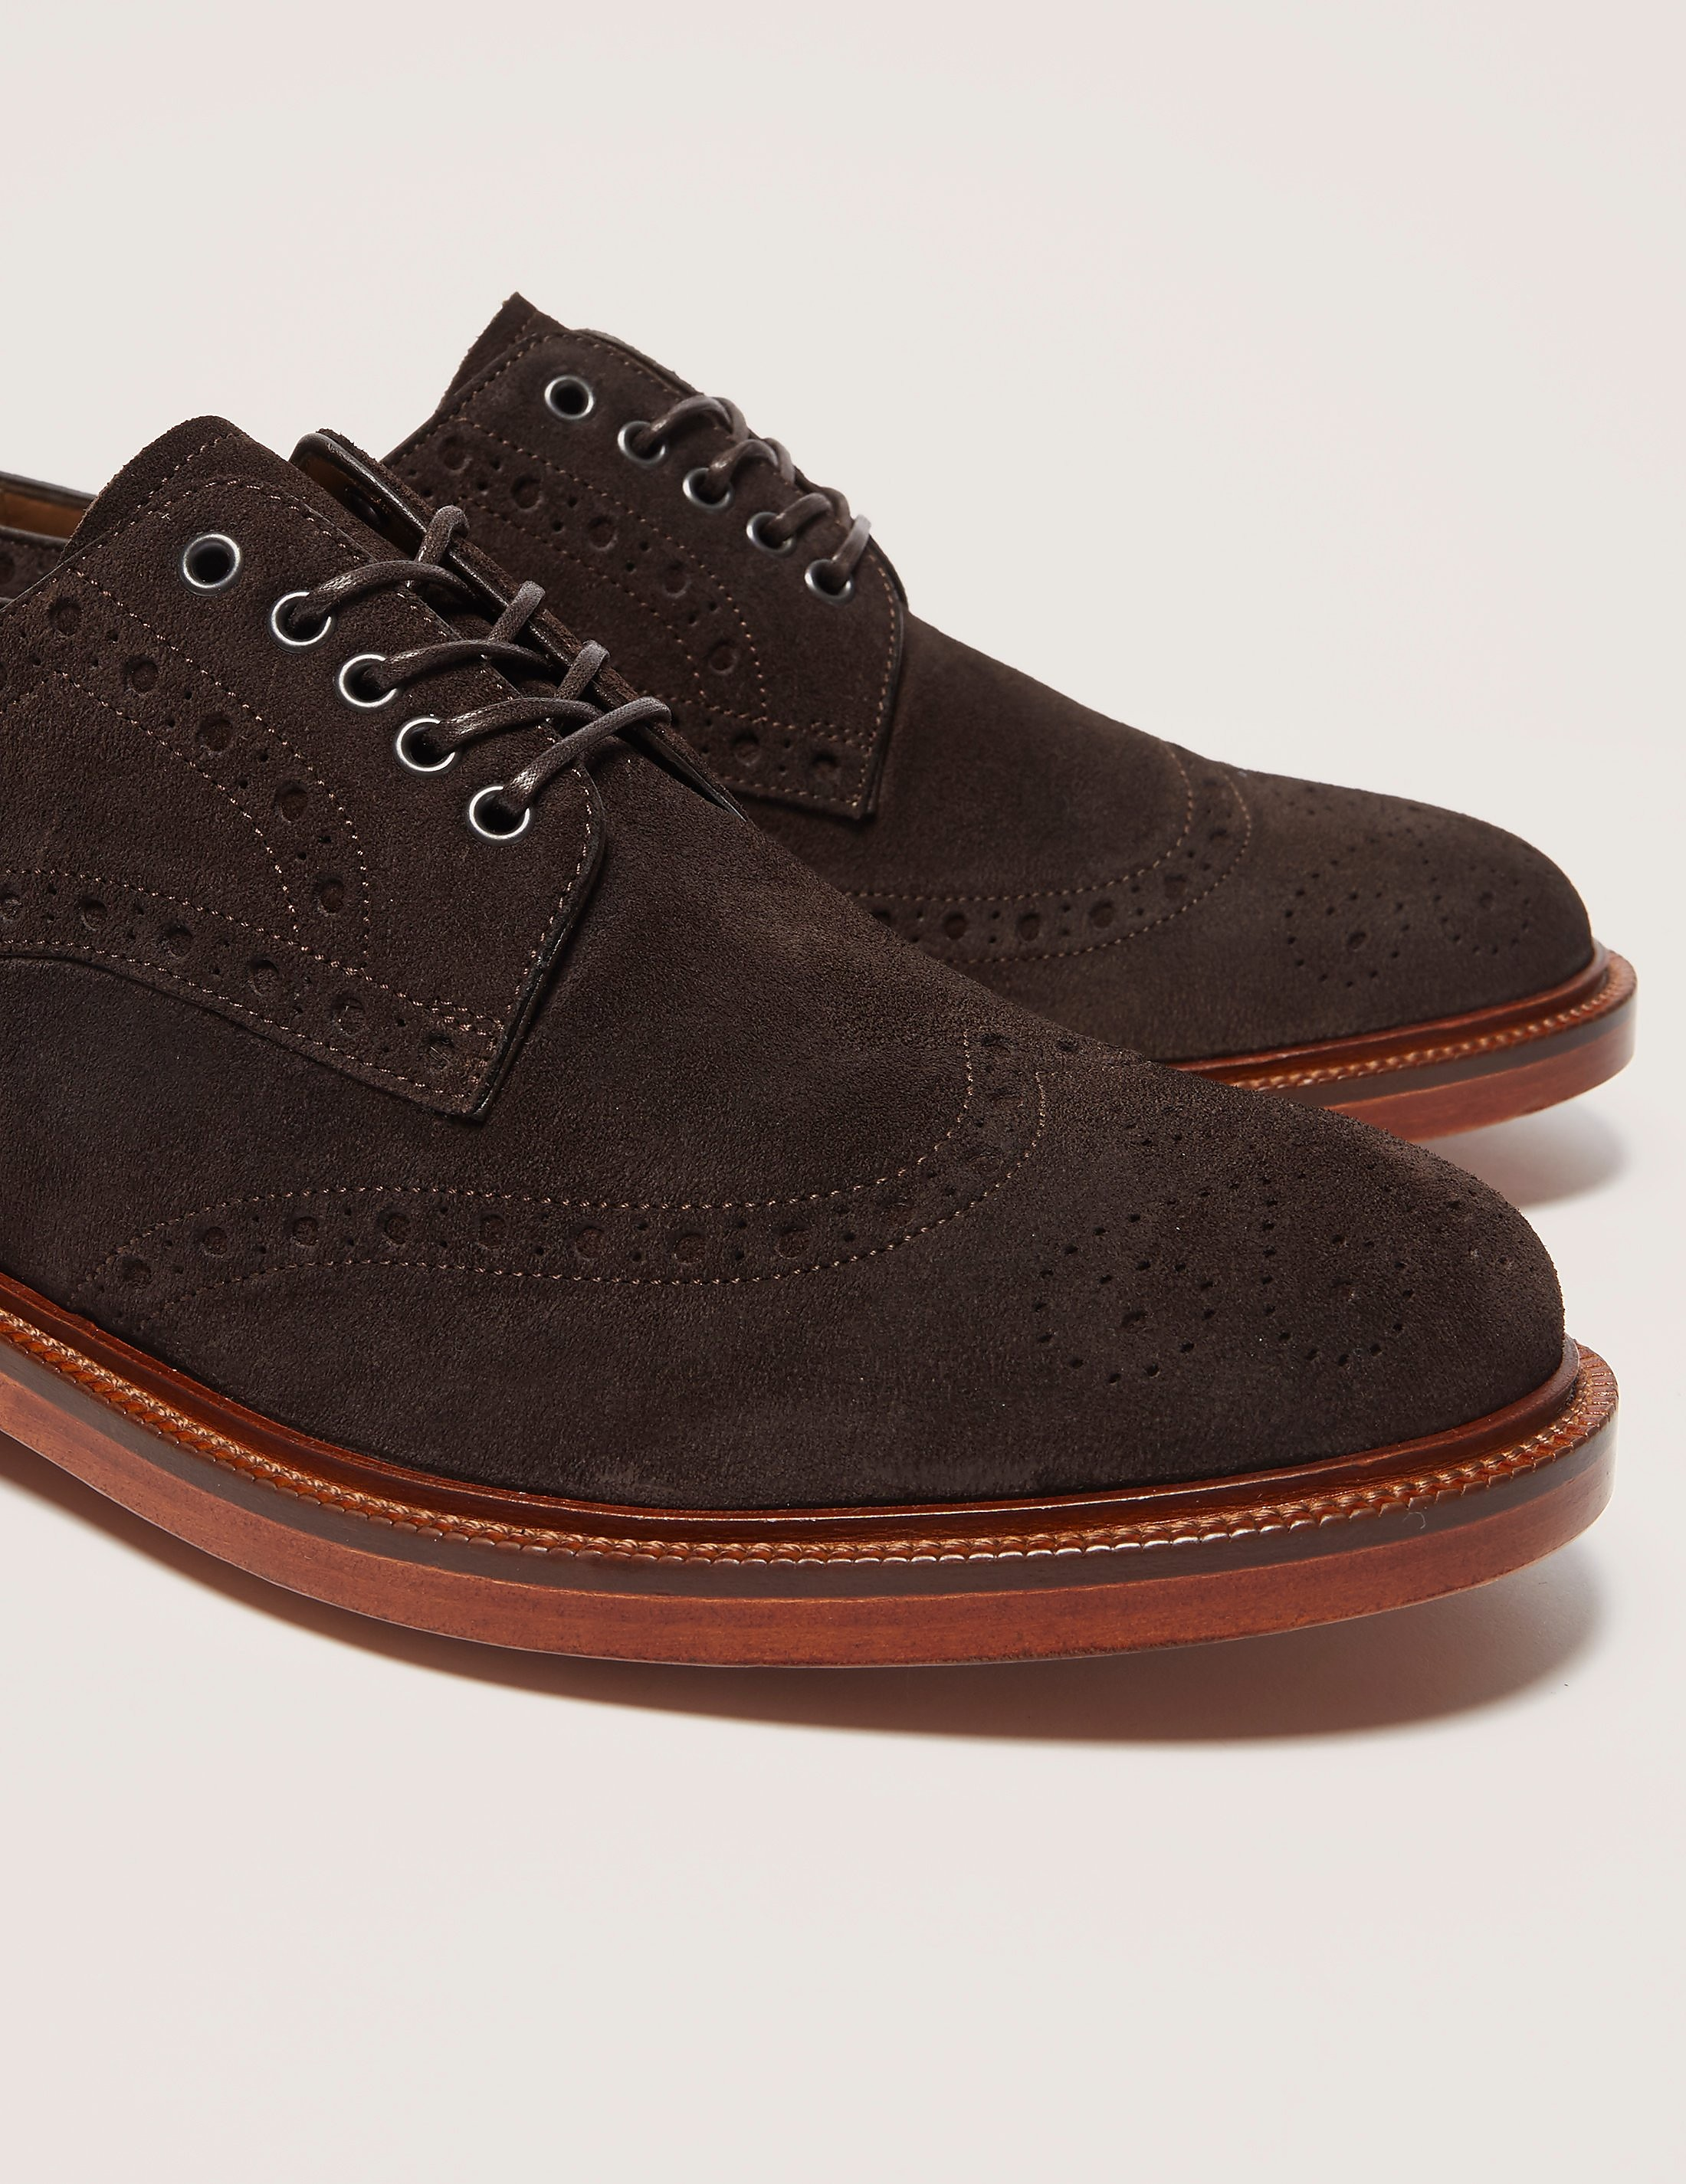 Paul Smith Xander Brogues